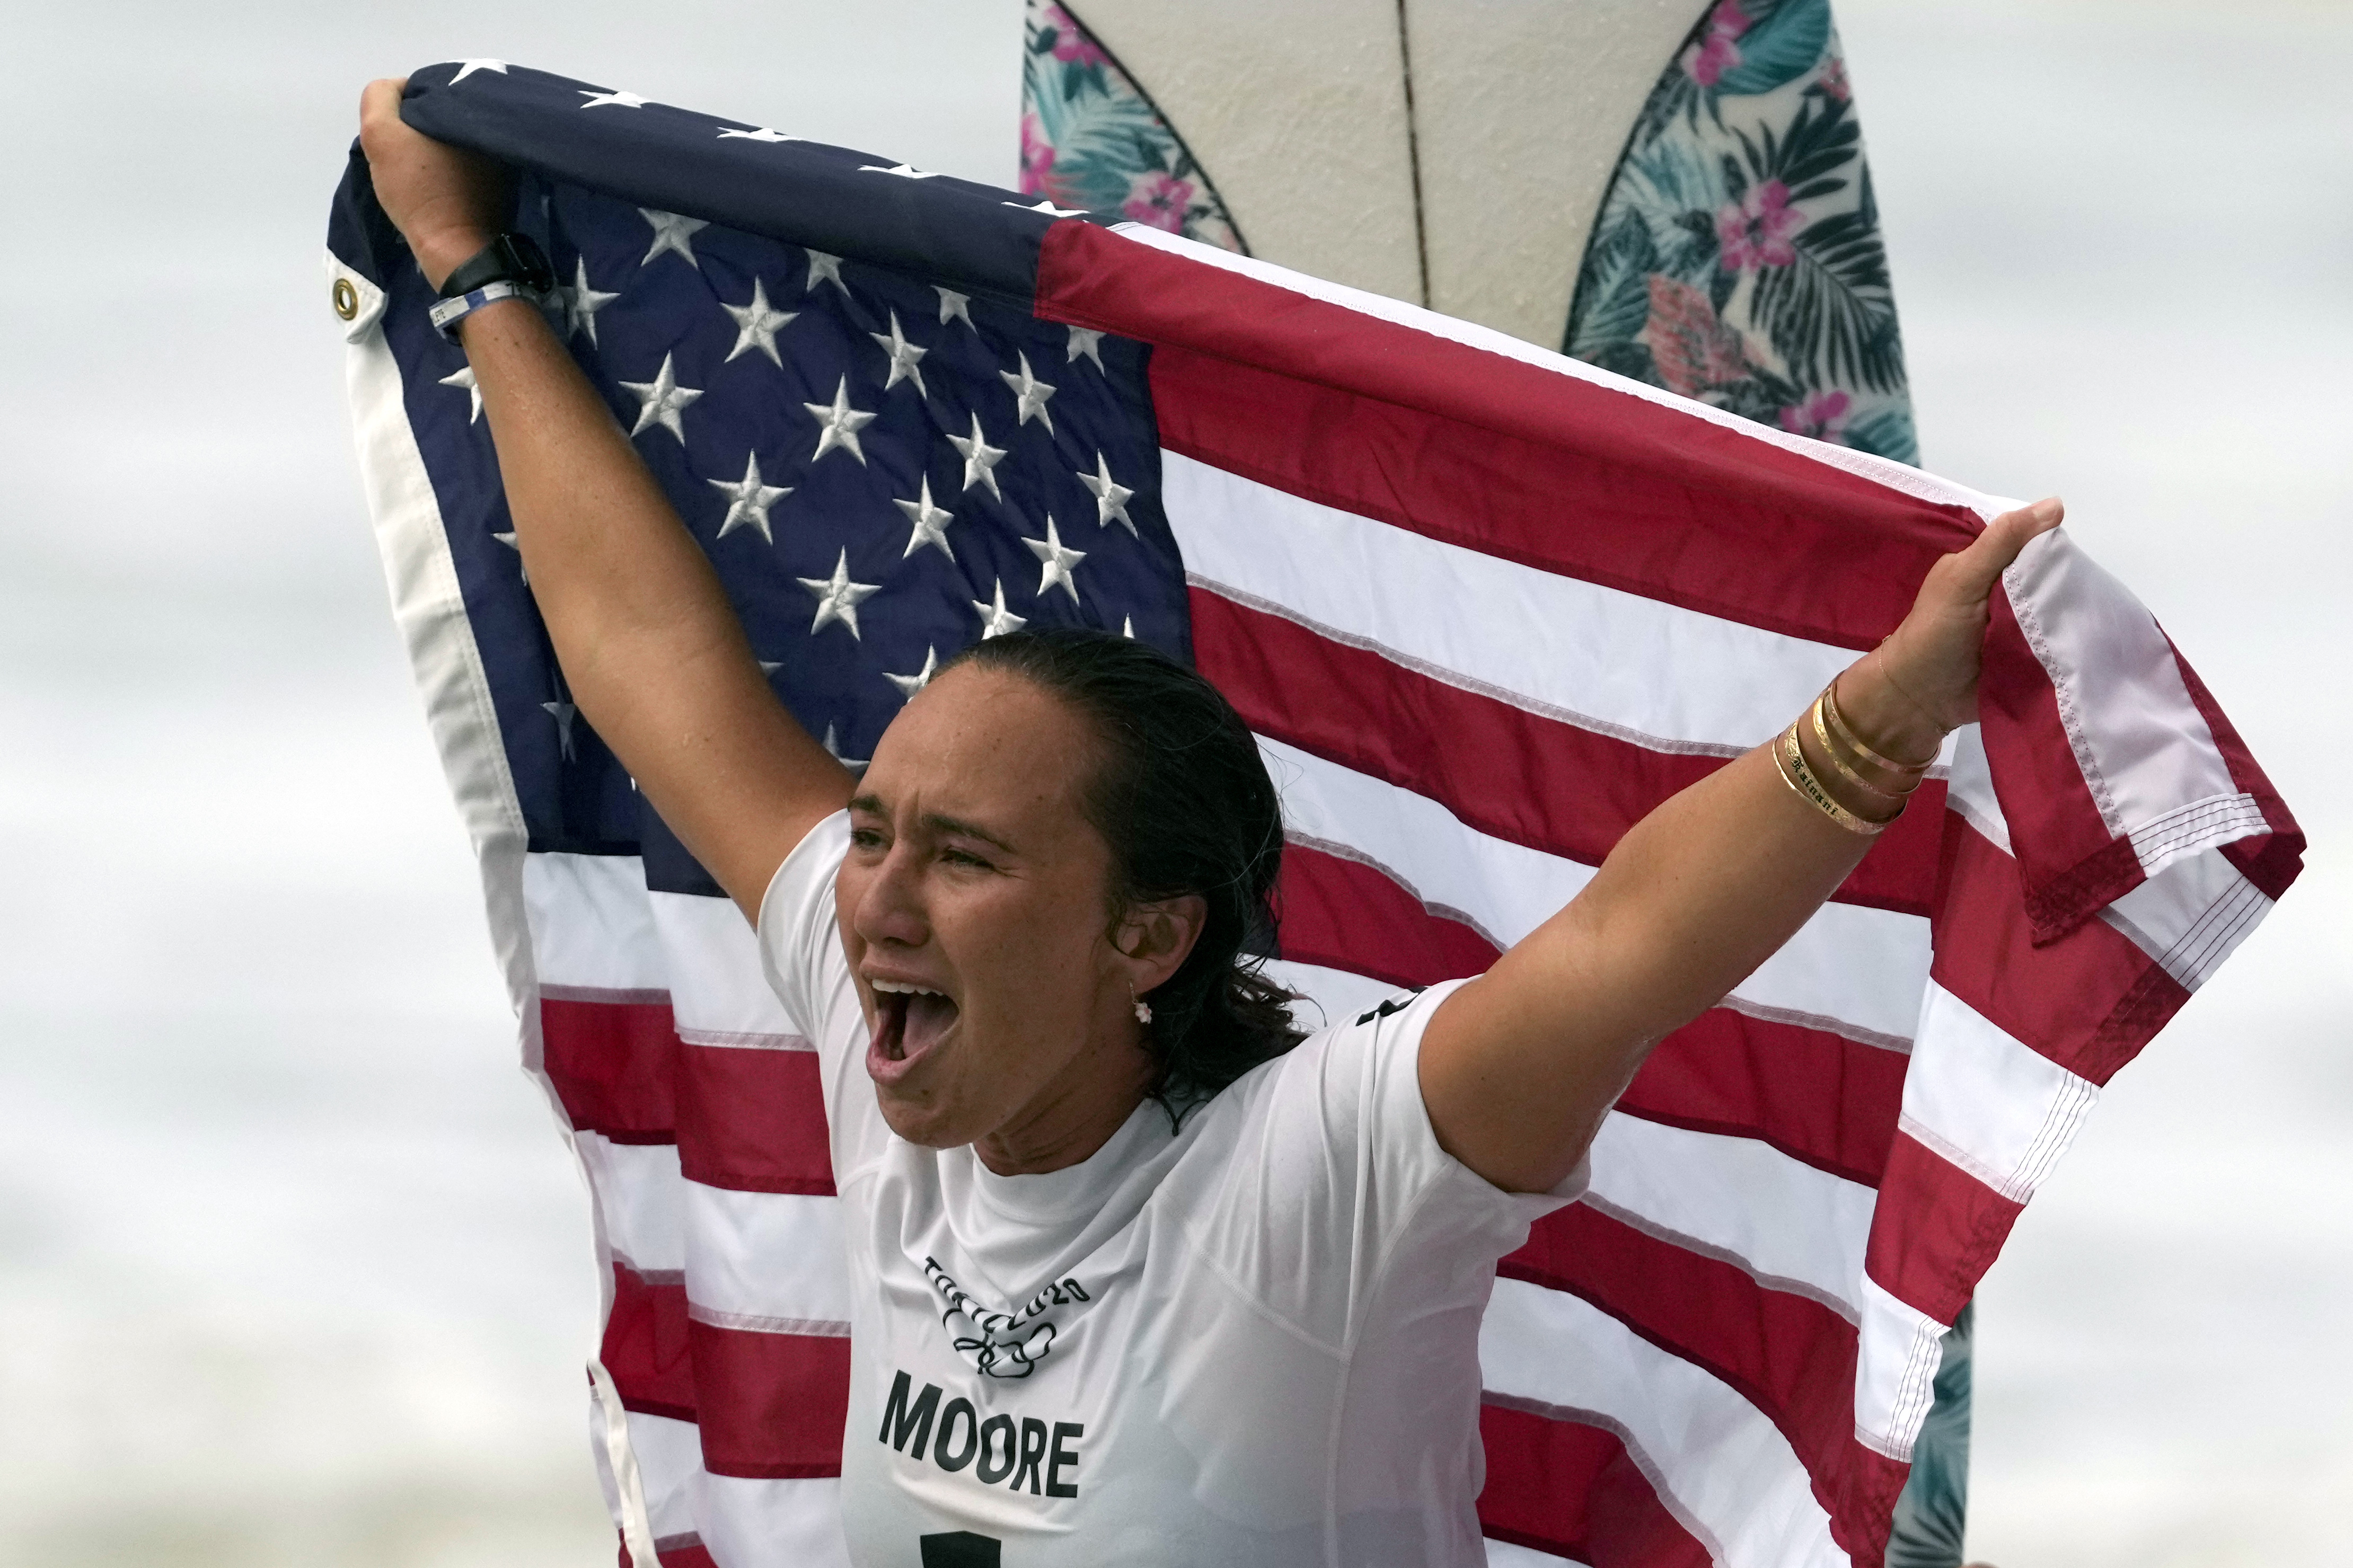 Carissa Moore of the United States celebrates winning the gold medal in surfing at the 2020 Summer Olympics.